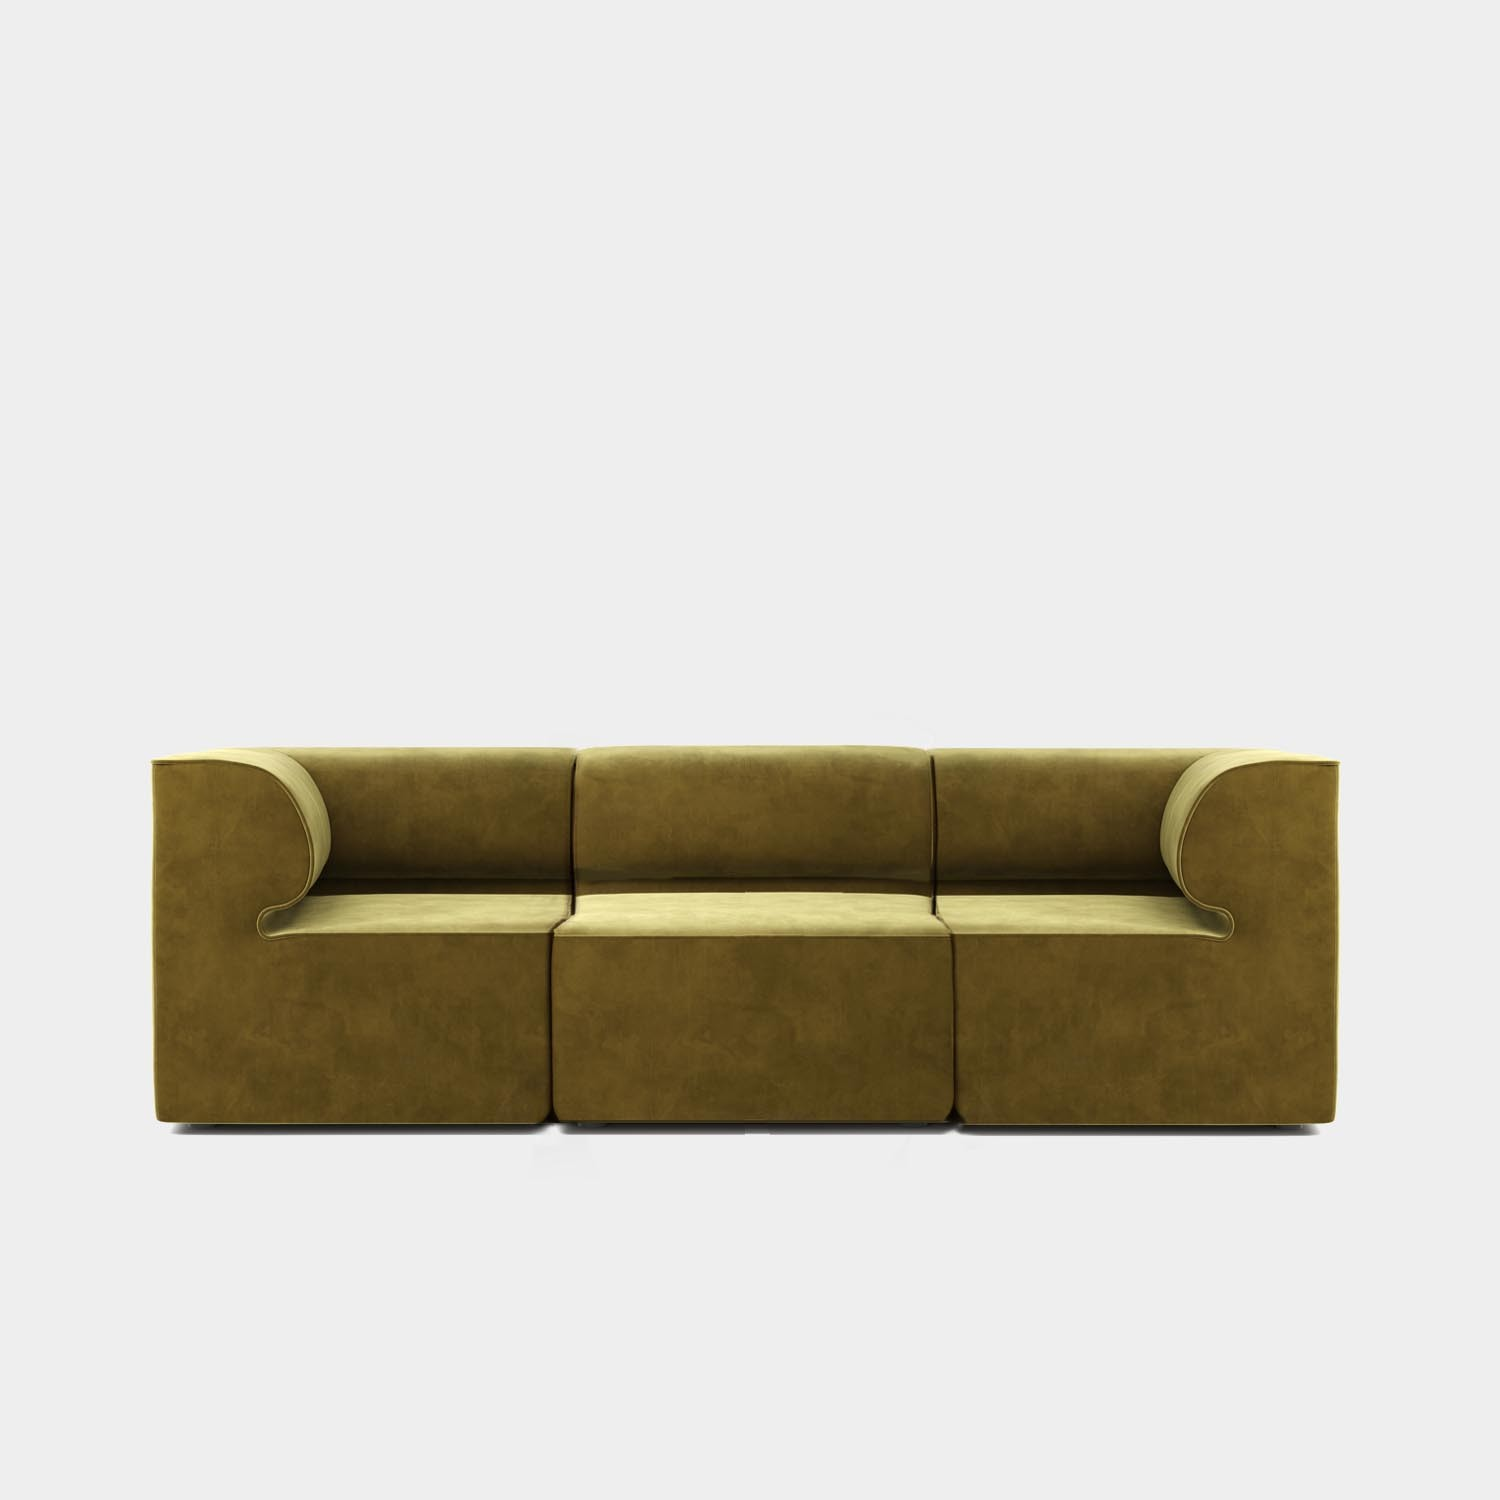 "Eave Modular Sofa 34"", Three Seater Sofa, Designer Collection"